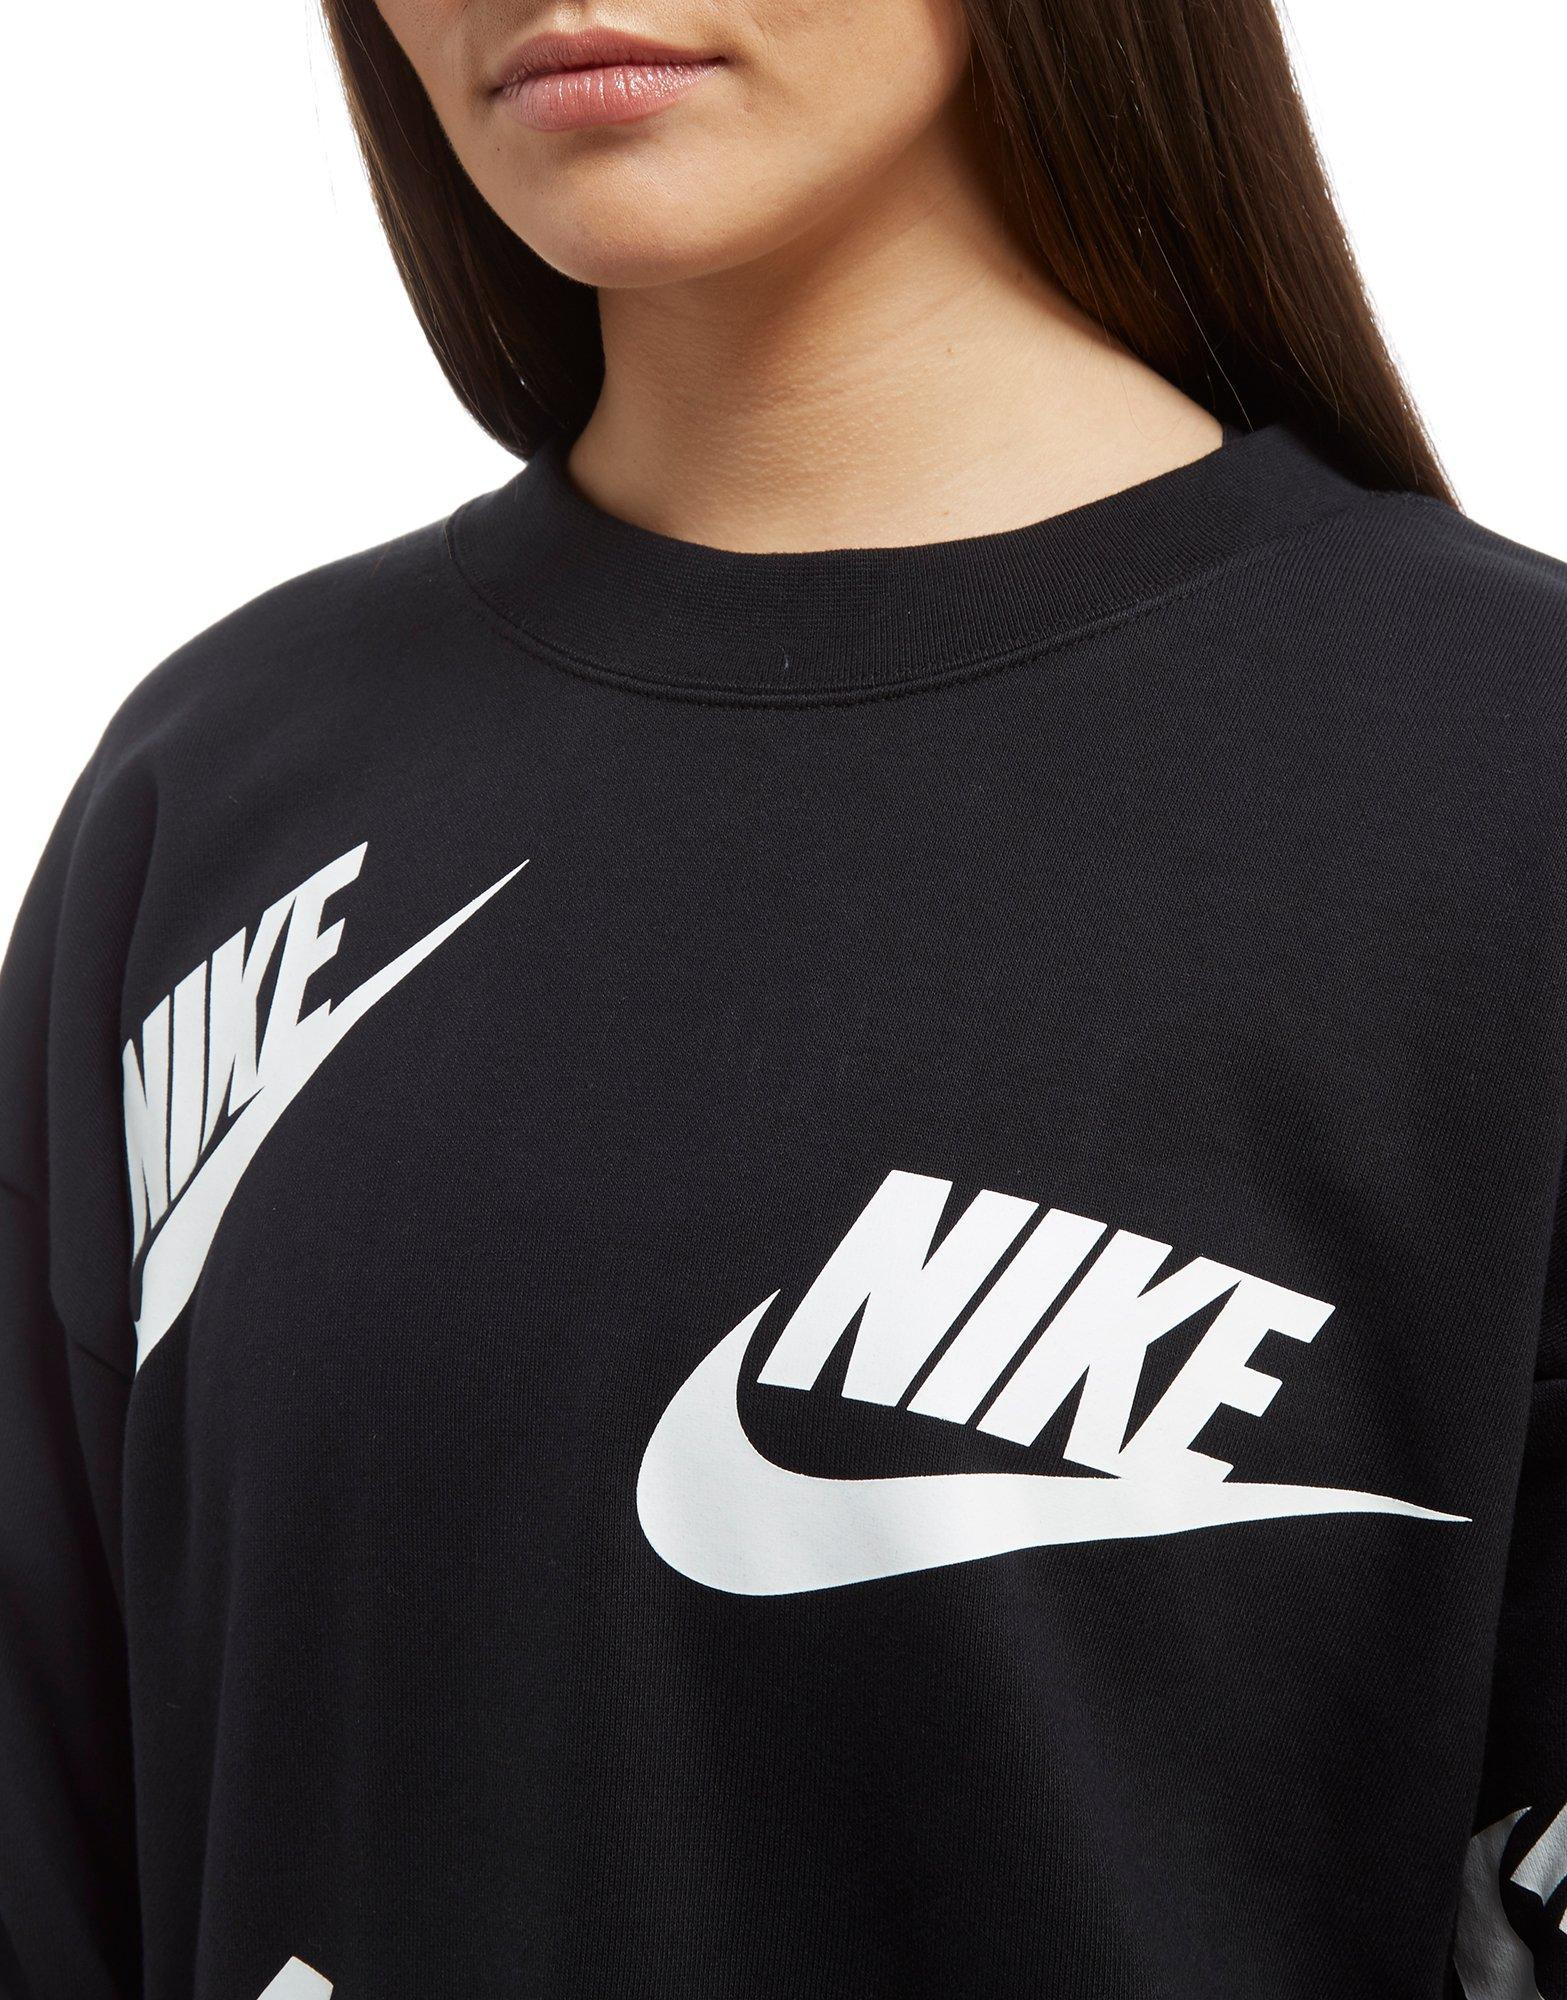 7b90acab9 Nike All Over Print Futura Crew Sweatshirt in Black - Lyst